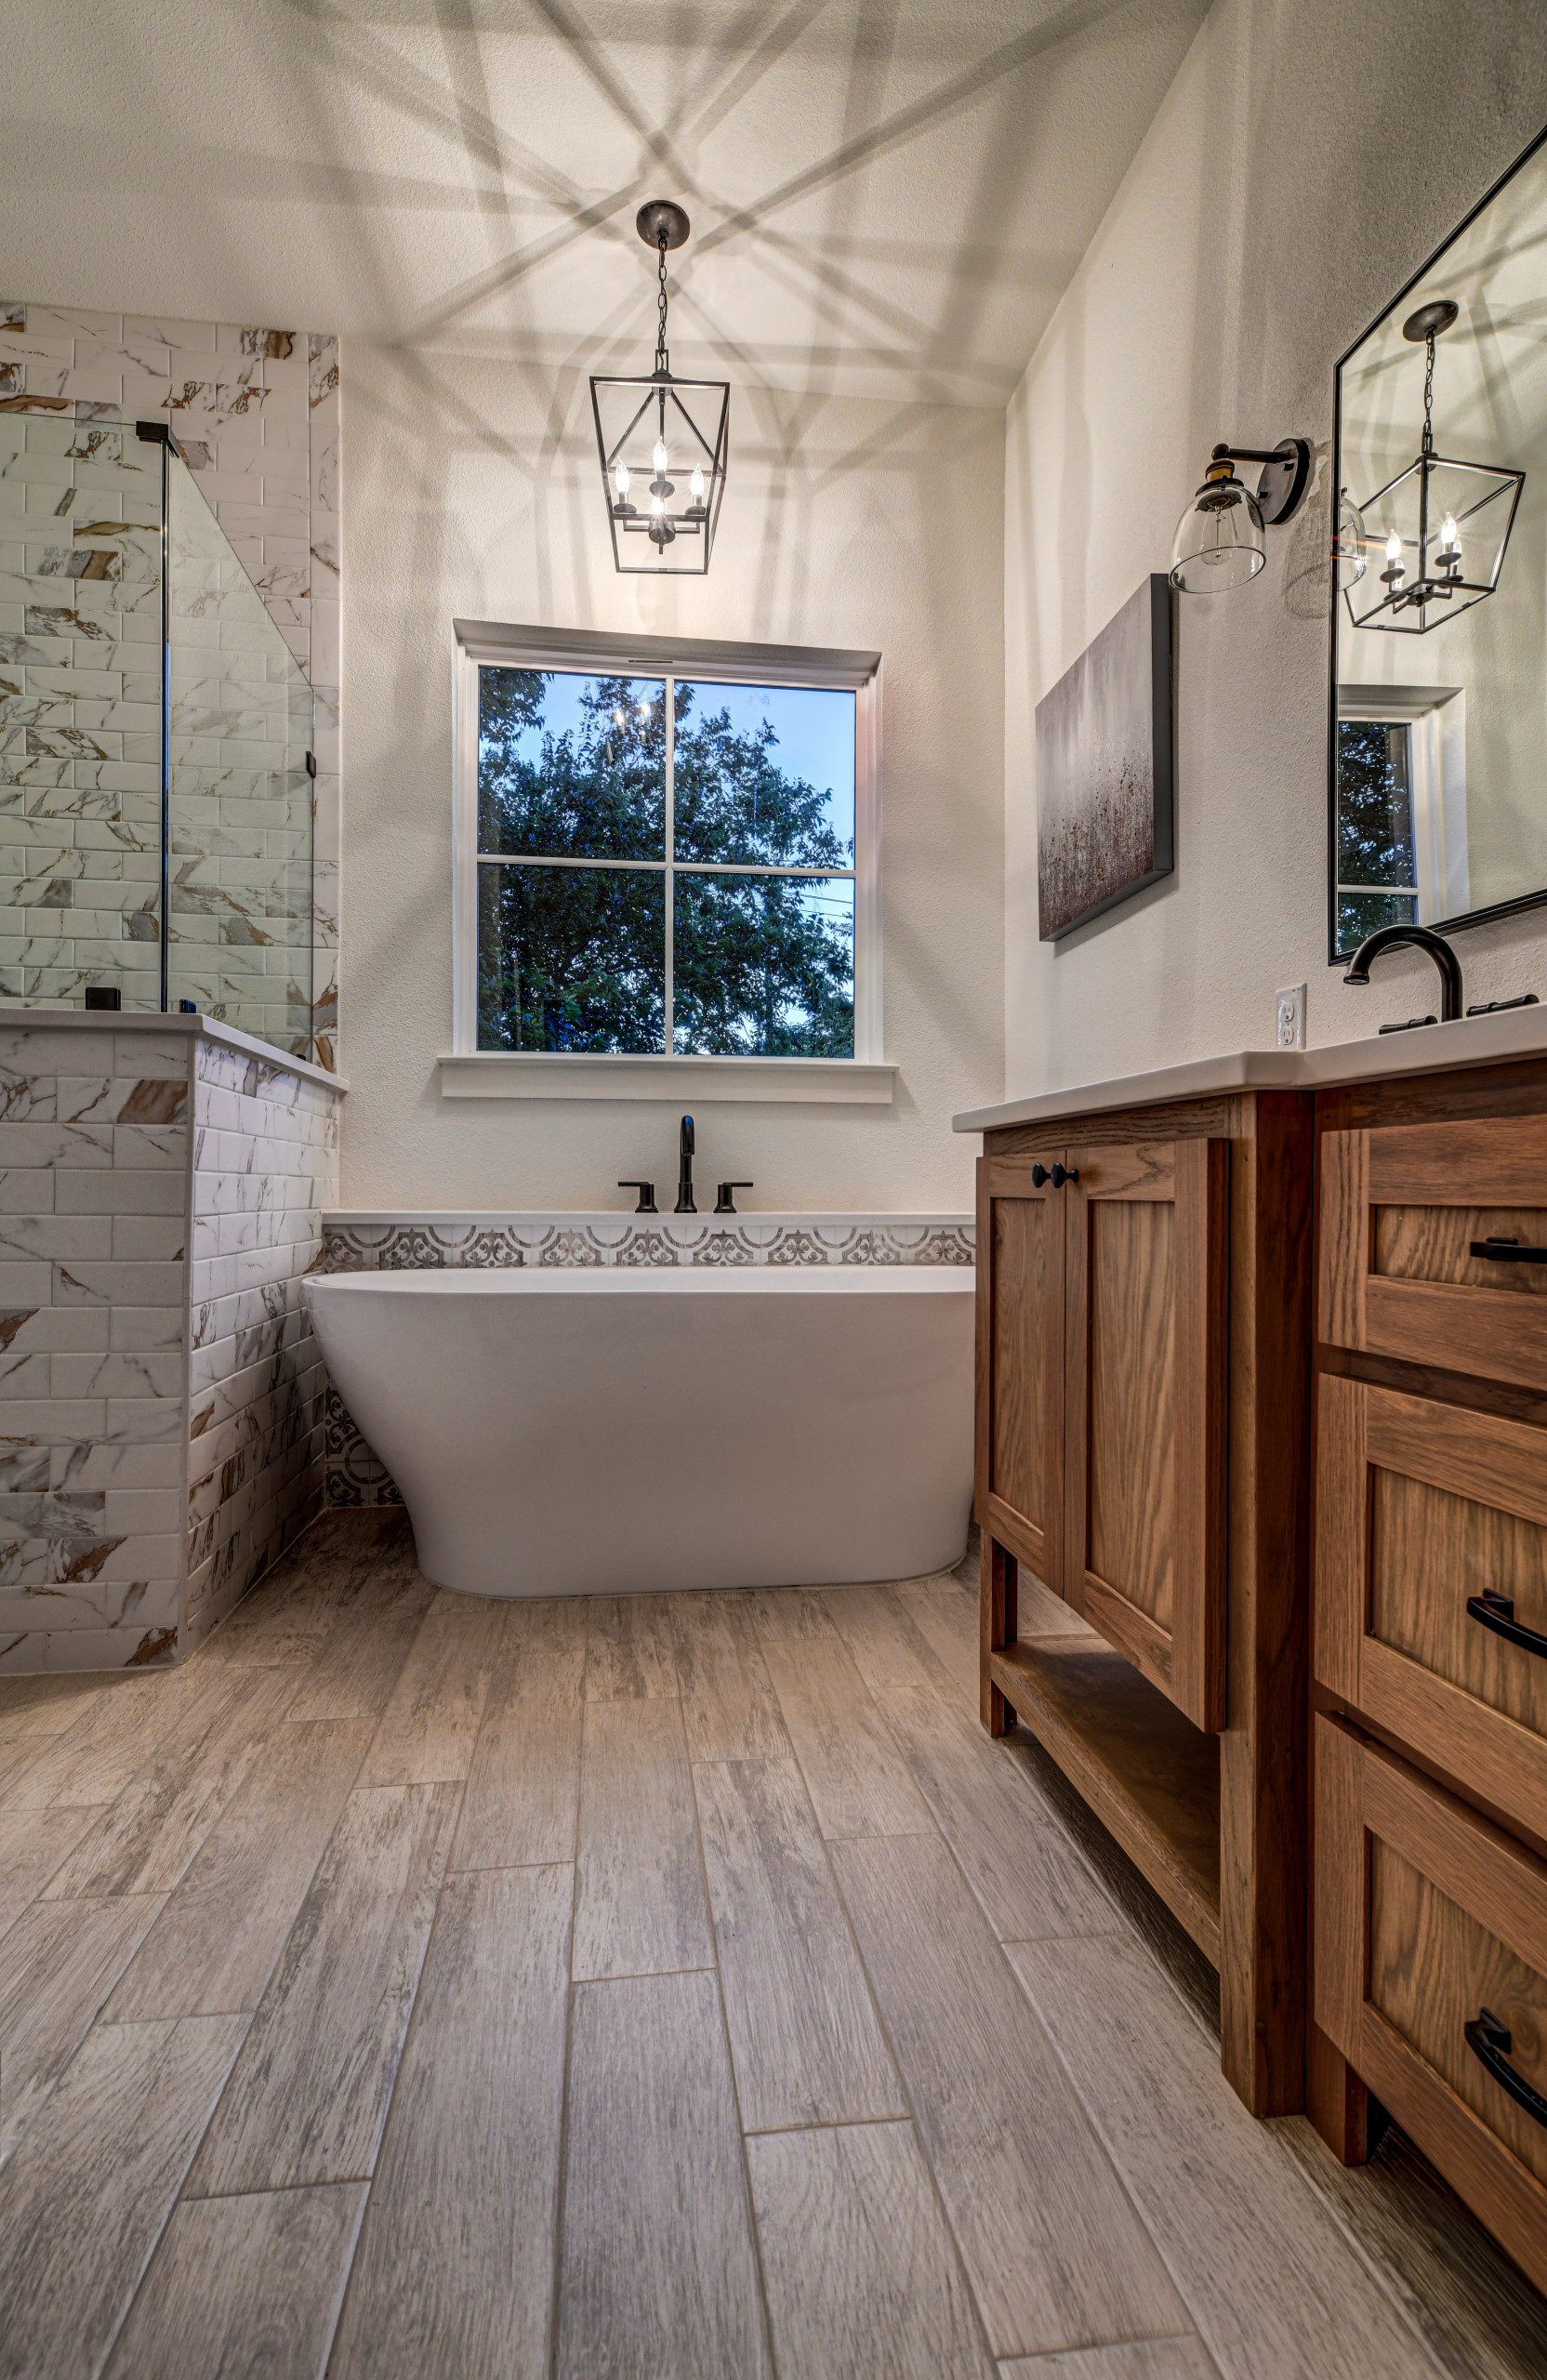 Owner's Suite with Stand Alone Tub